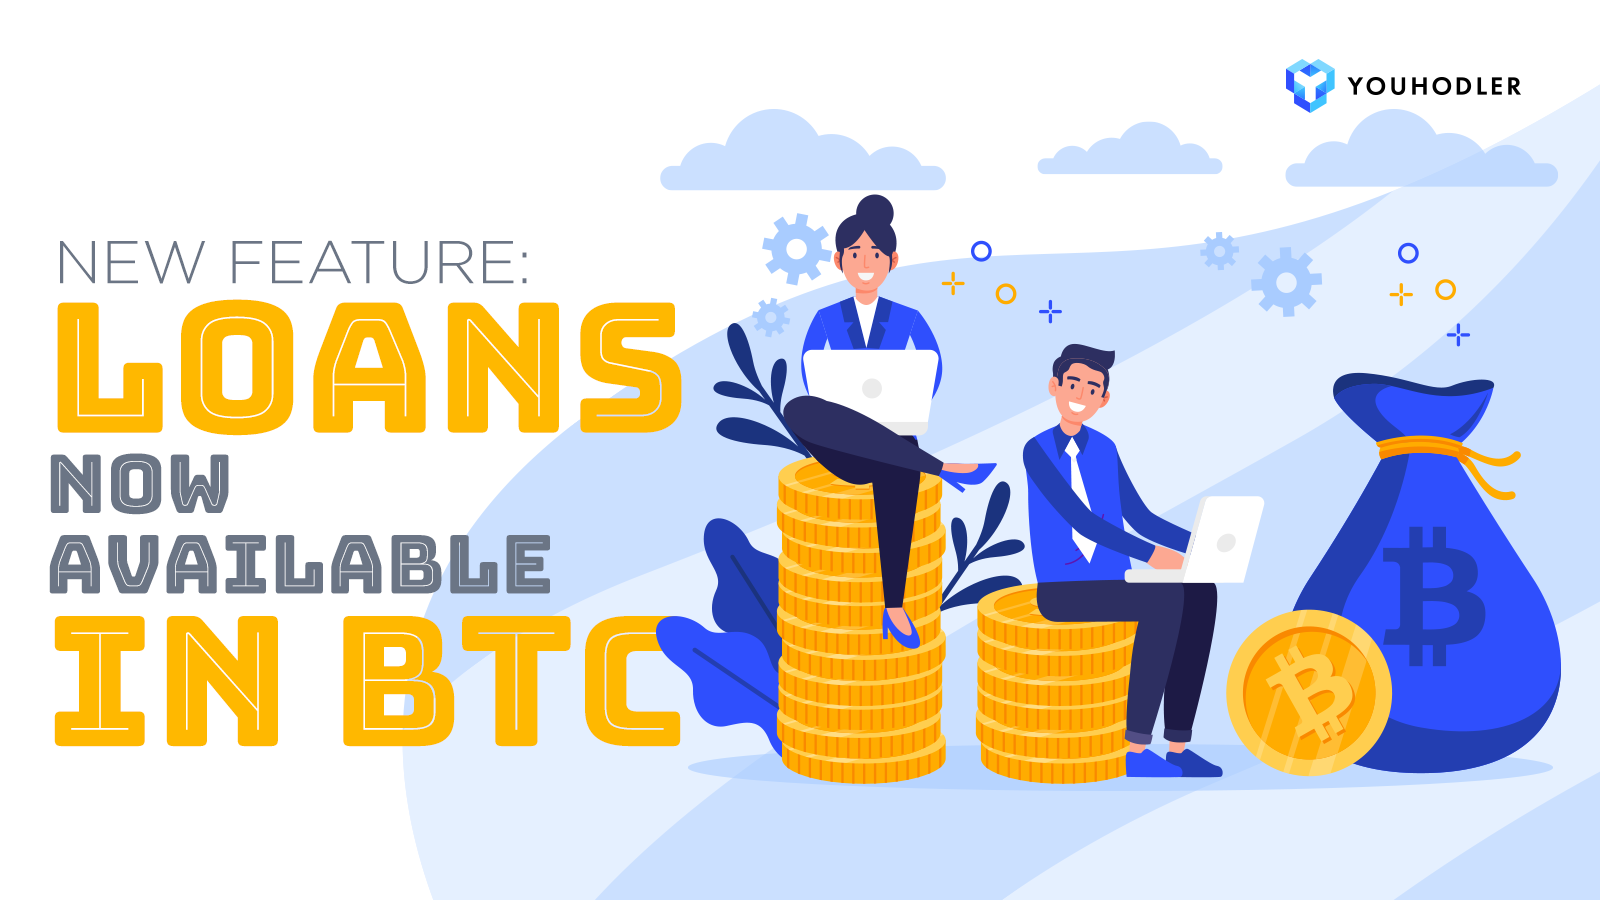 YouHodler is expanding our suite of features with the launch of a Bitcoin (BTC) loan offering tied against 12+ cryptocurrencies as collateral.